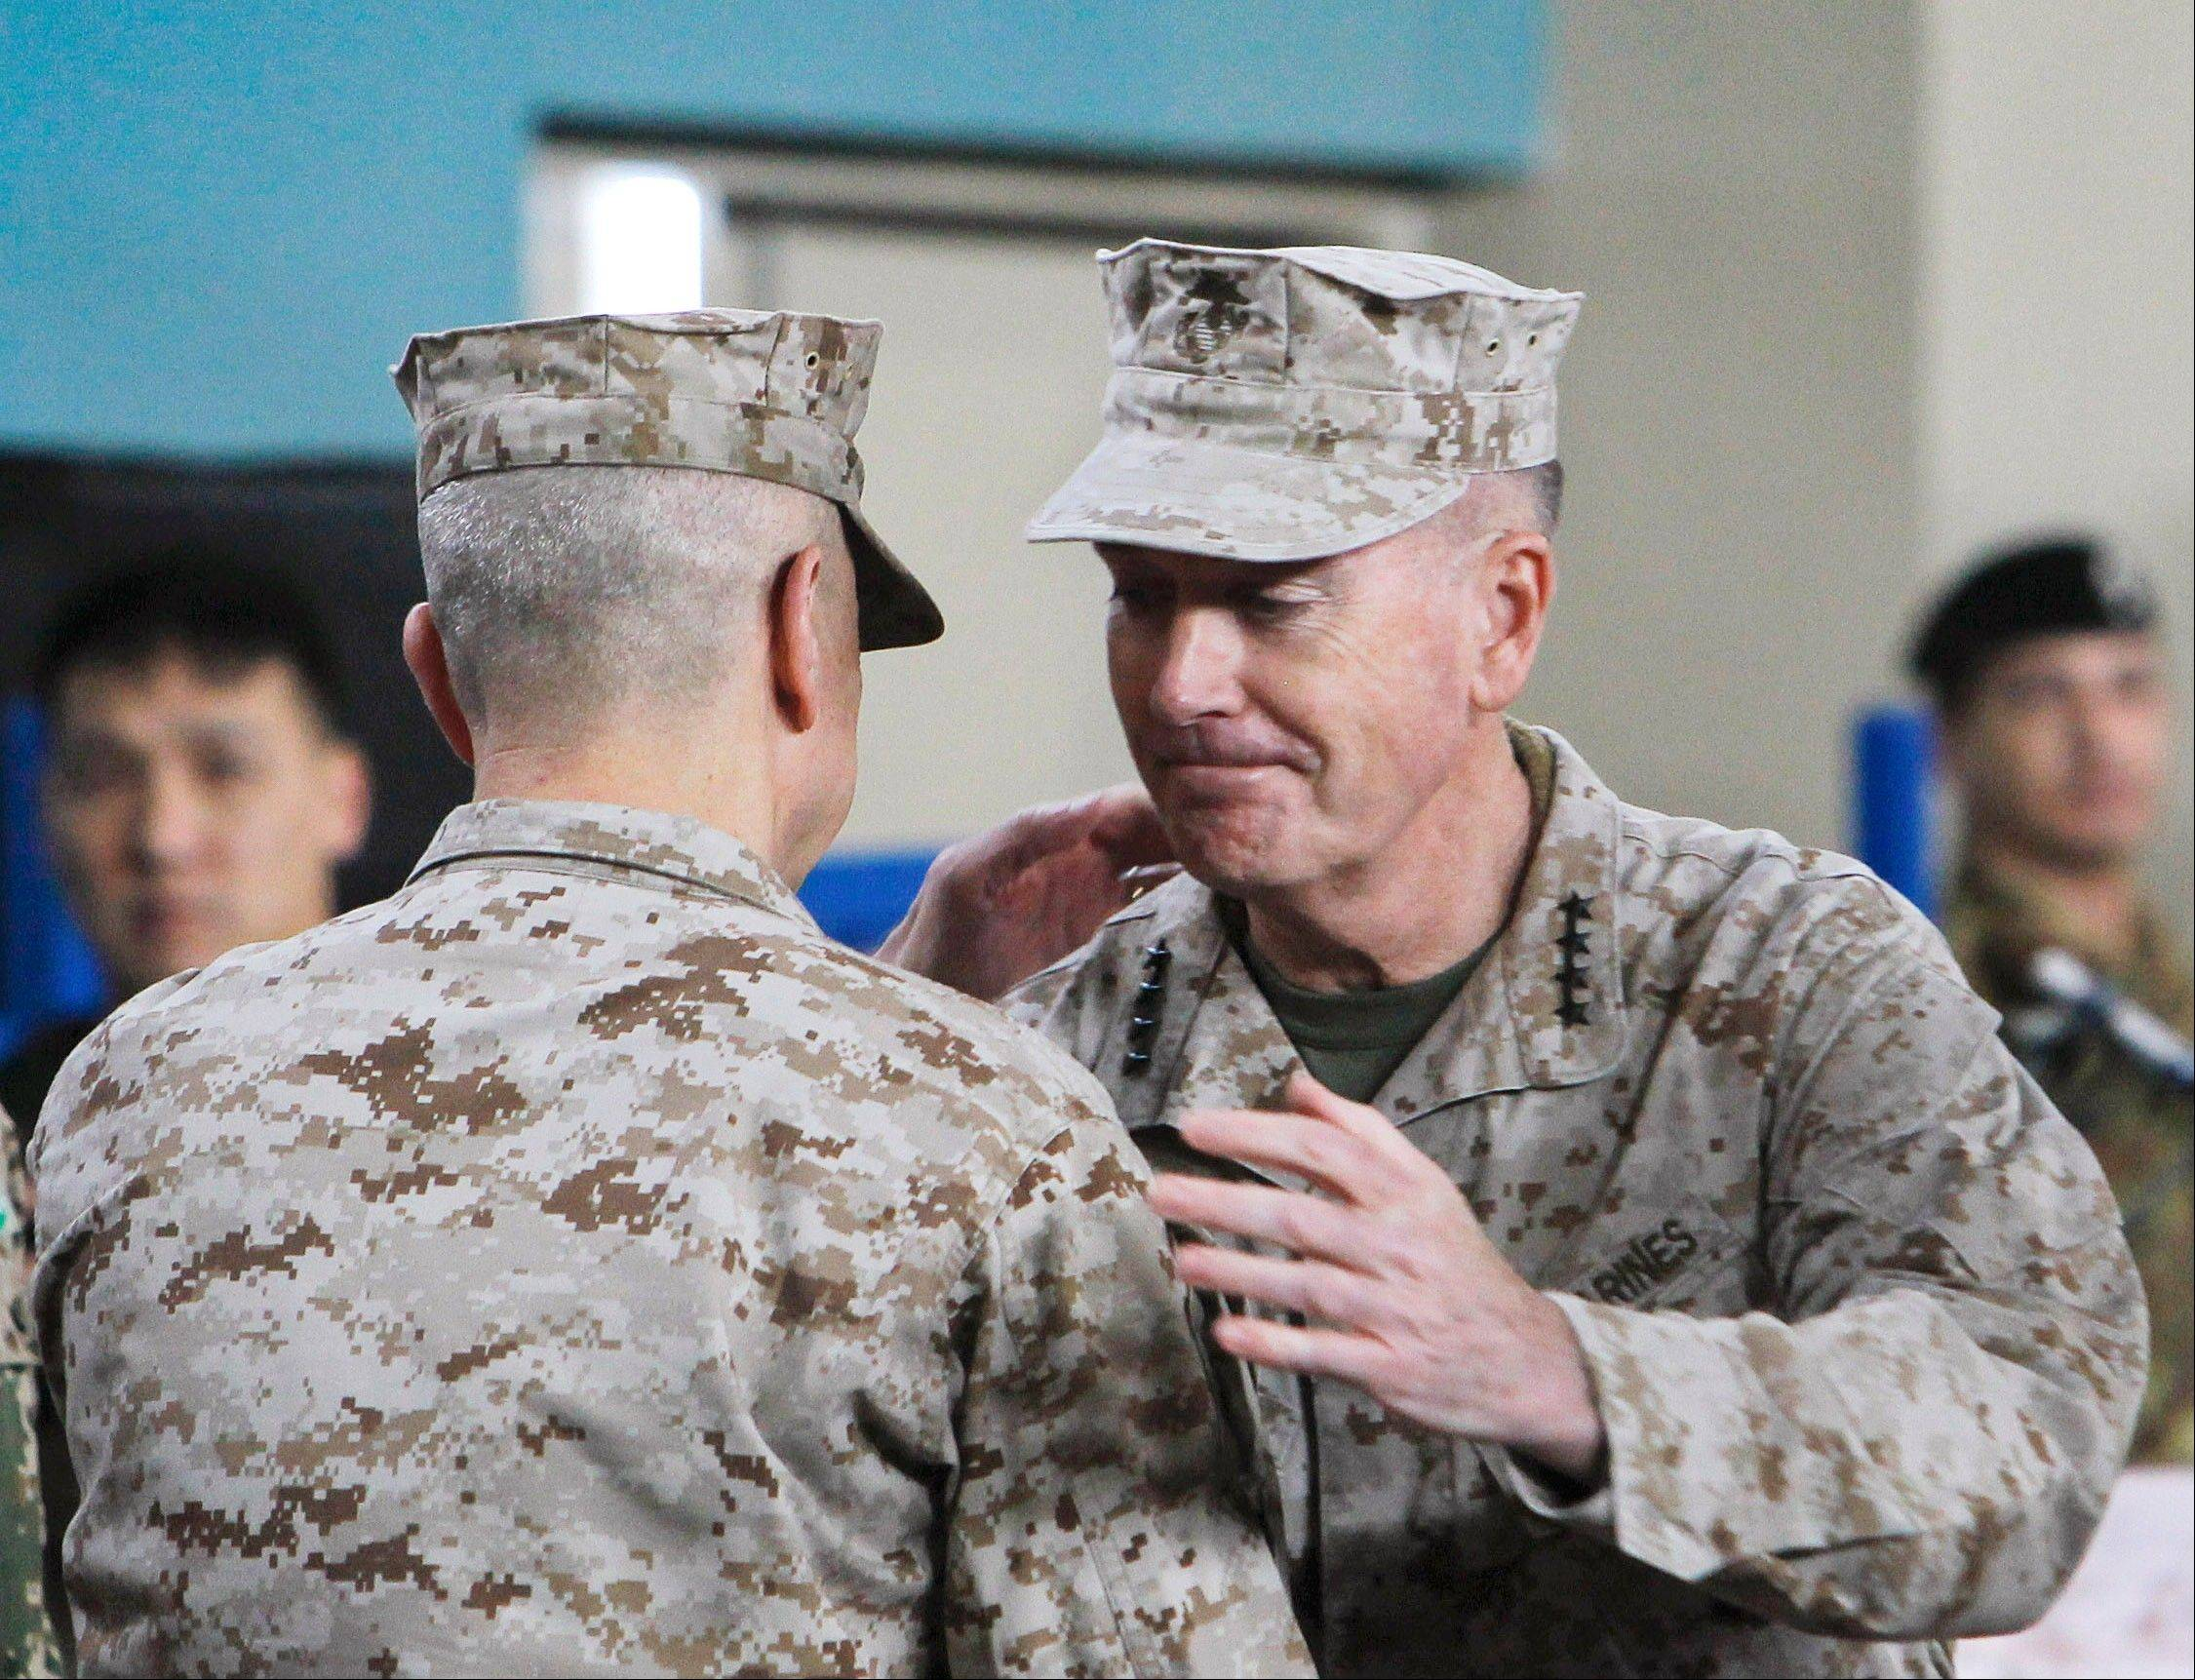 Associated PressGen. Joseph Dunford, right, hugs the outgoing commander, Gen. John Allen, on Sunday during a change-of-command ceremony in Kabul, Afghanistan.